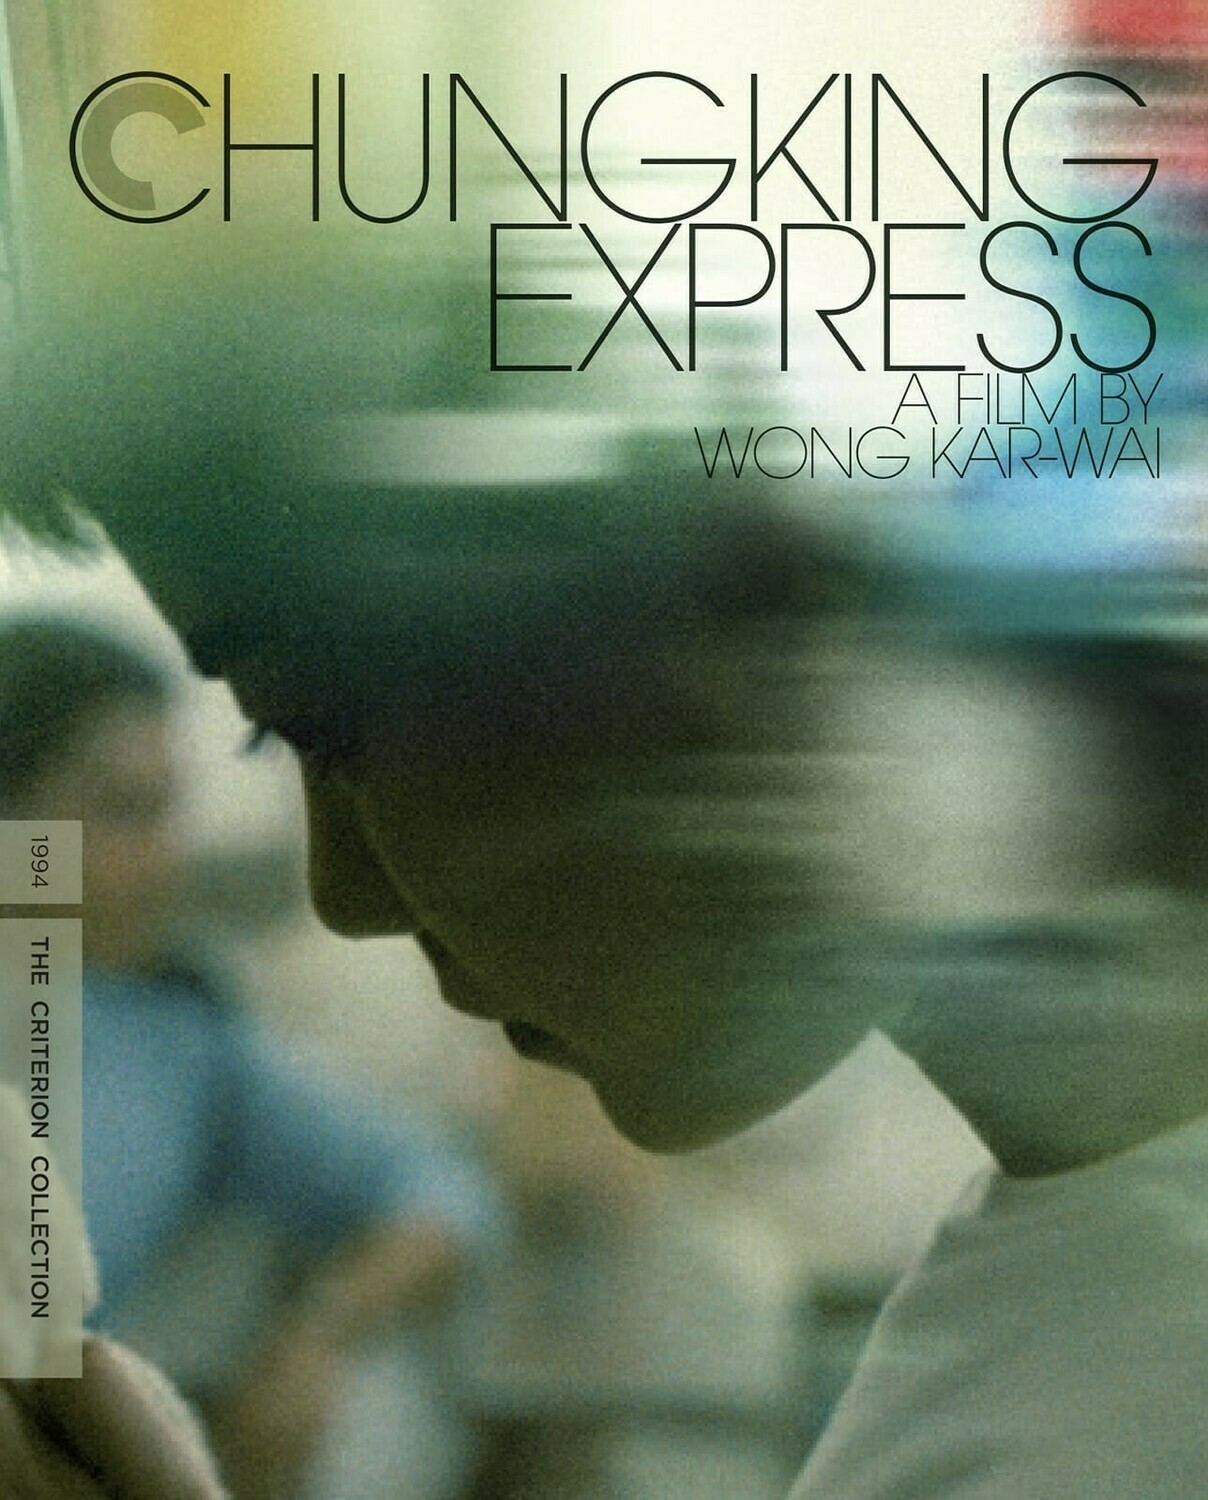 CHUNGKING EXPRESS - BLURAY